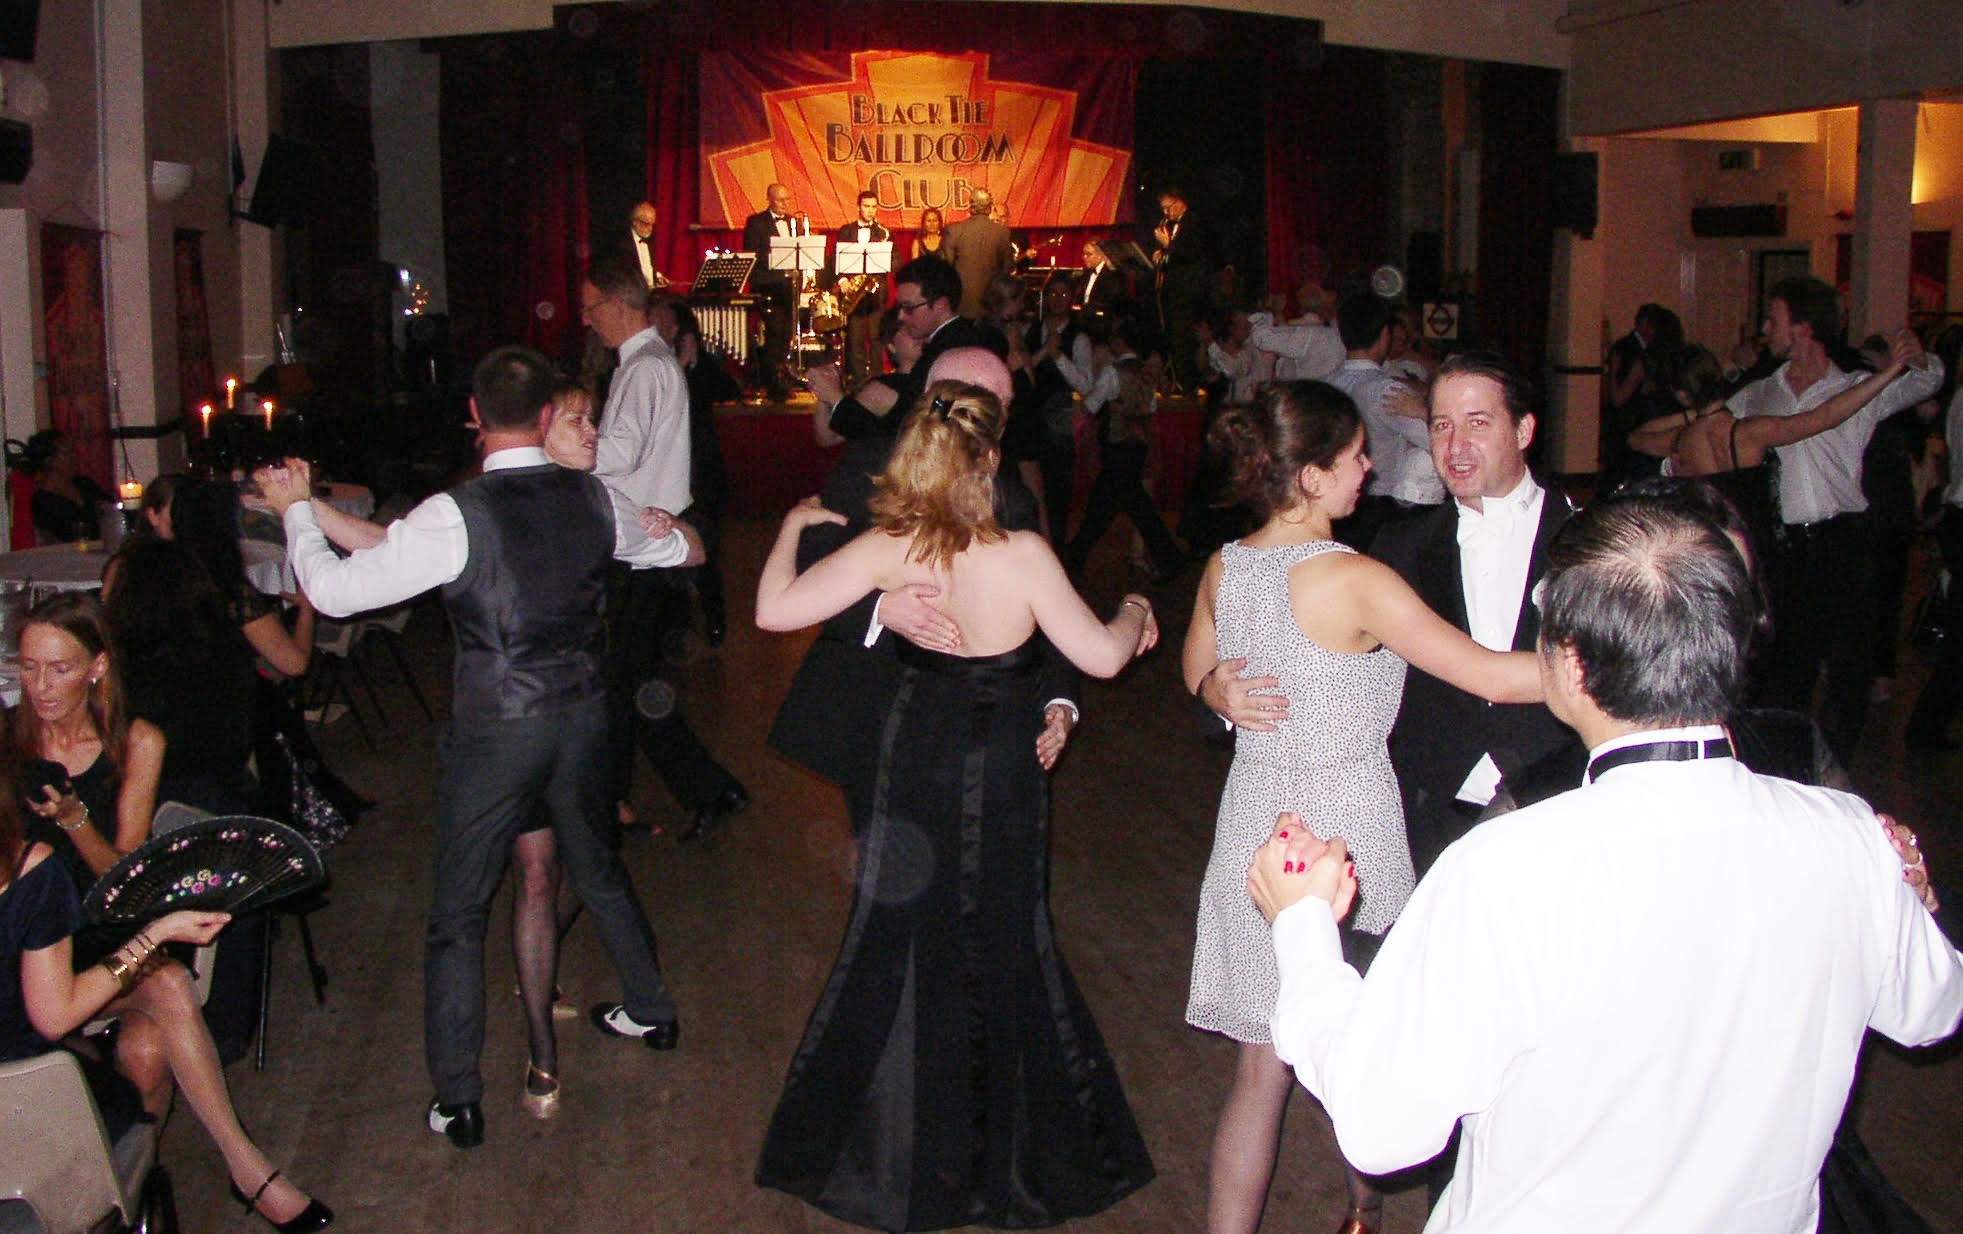 Black Tie Ballroom Club